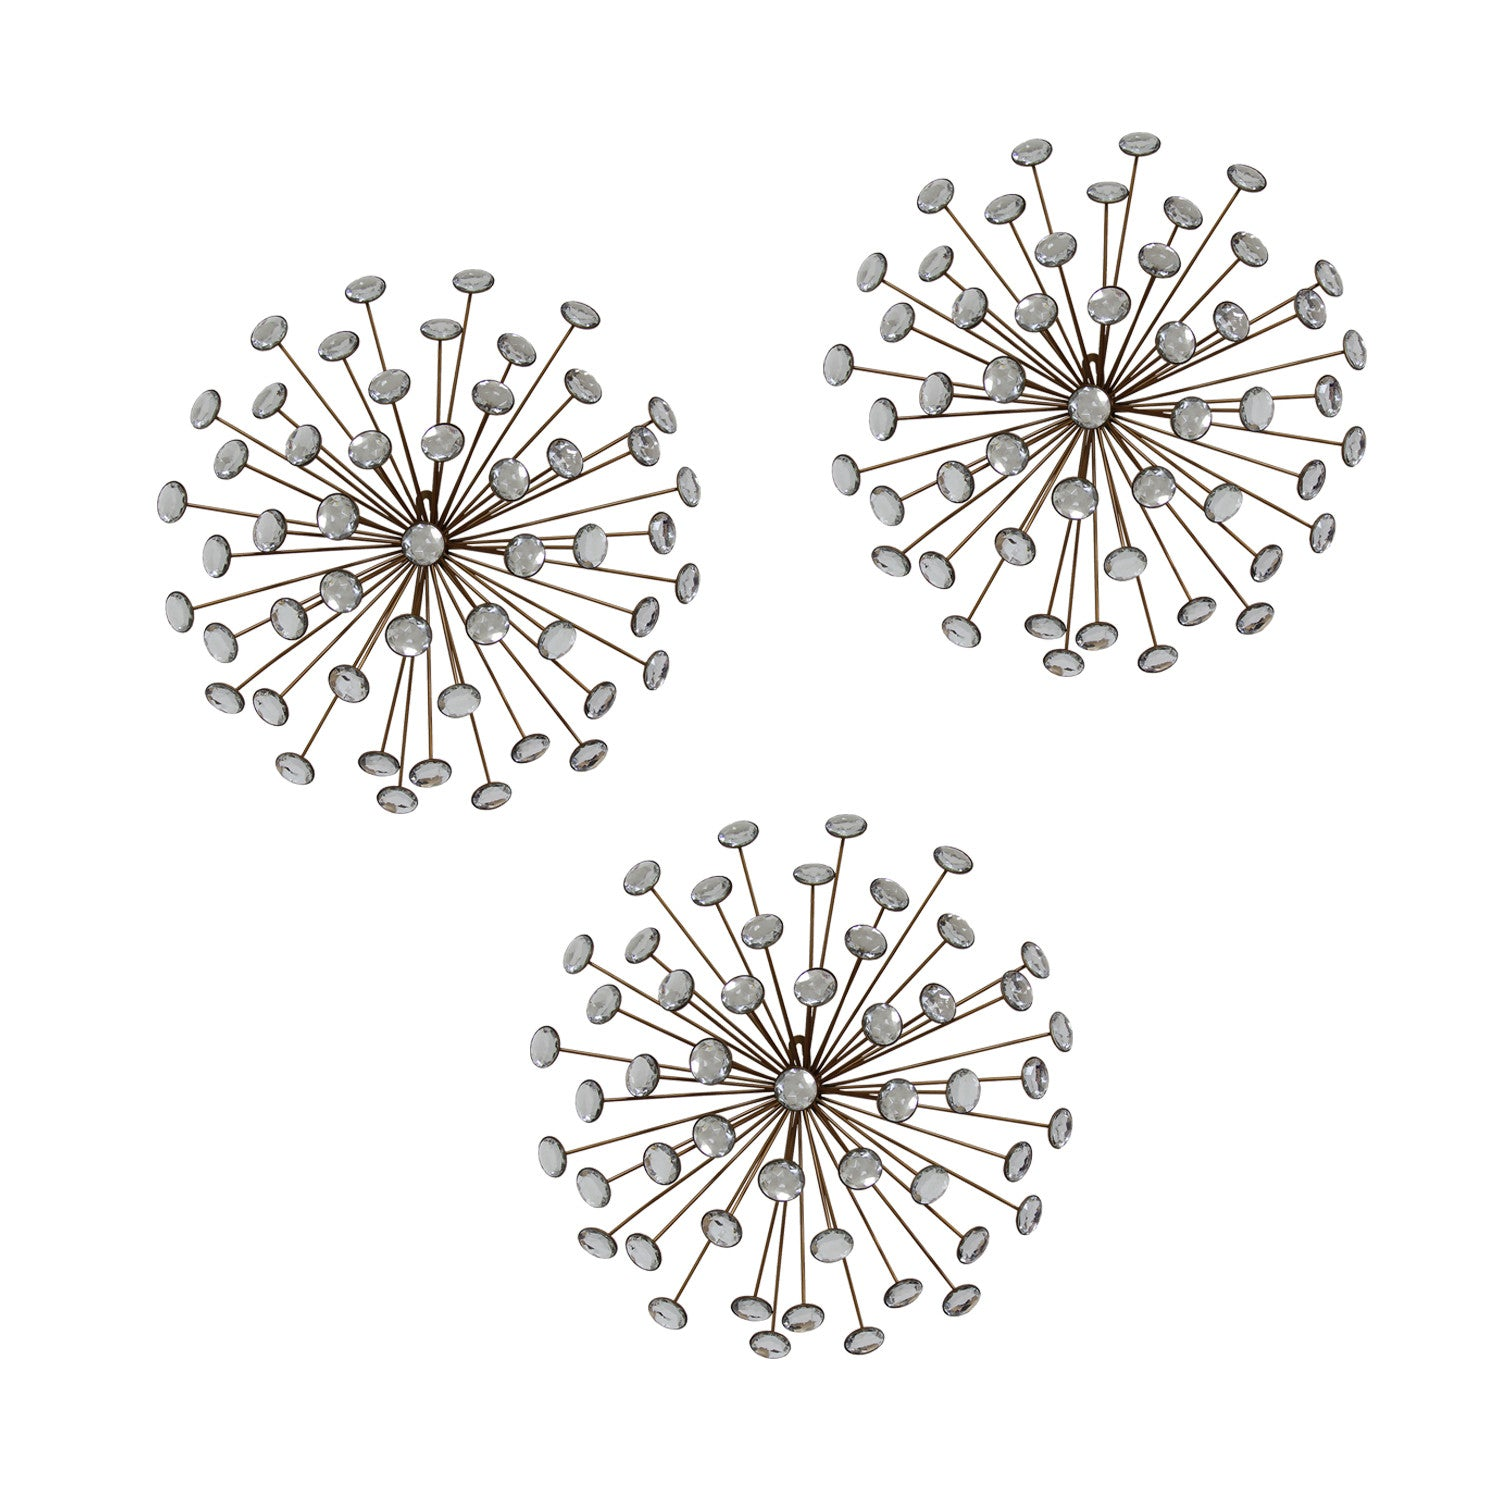 Stratton Home D cor Set of 3 Gold Burst Wall D cor. Stratton Home D cor Set of 3 Gold Burst Wall D cor   Stratton Home